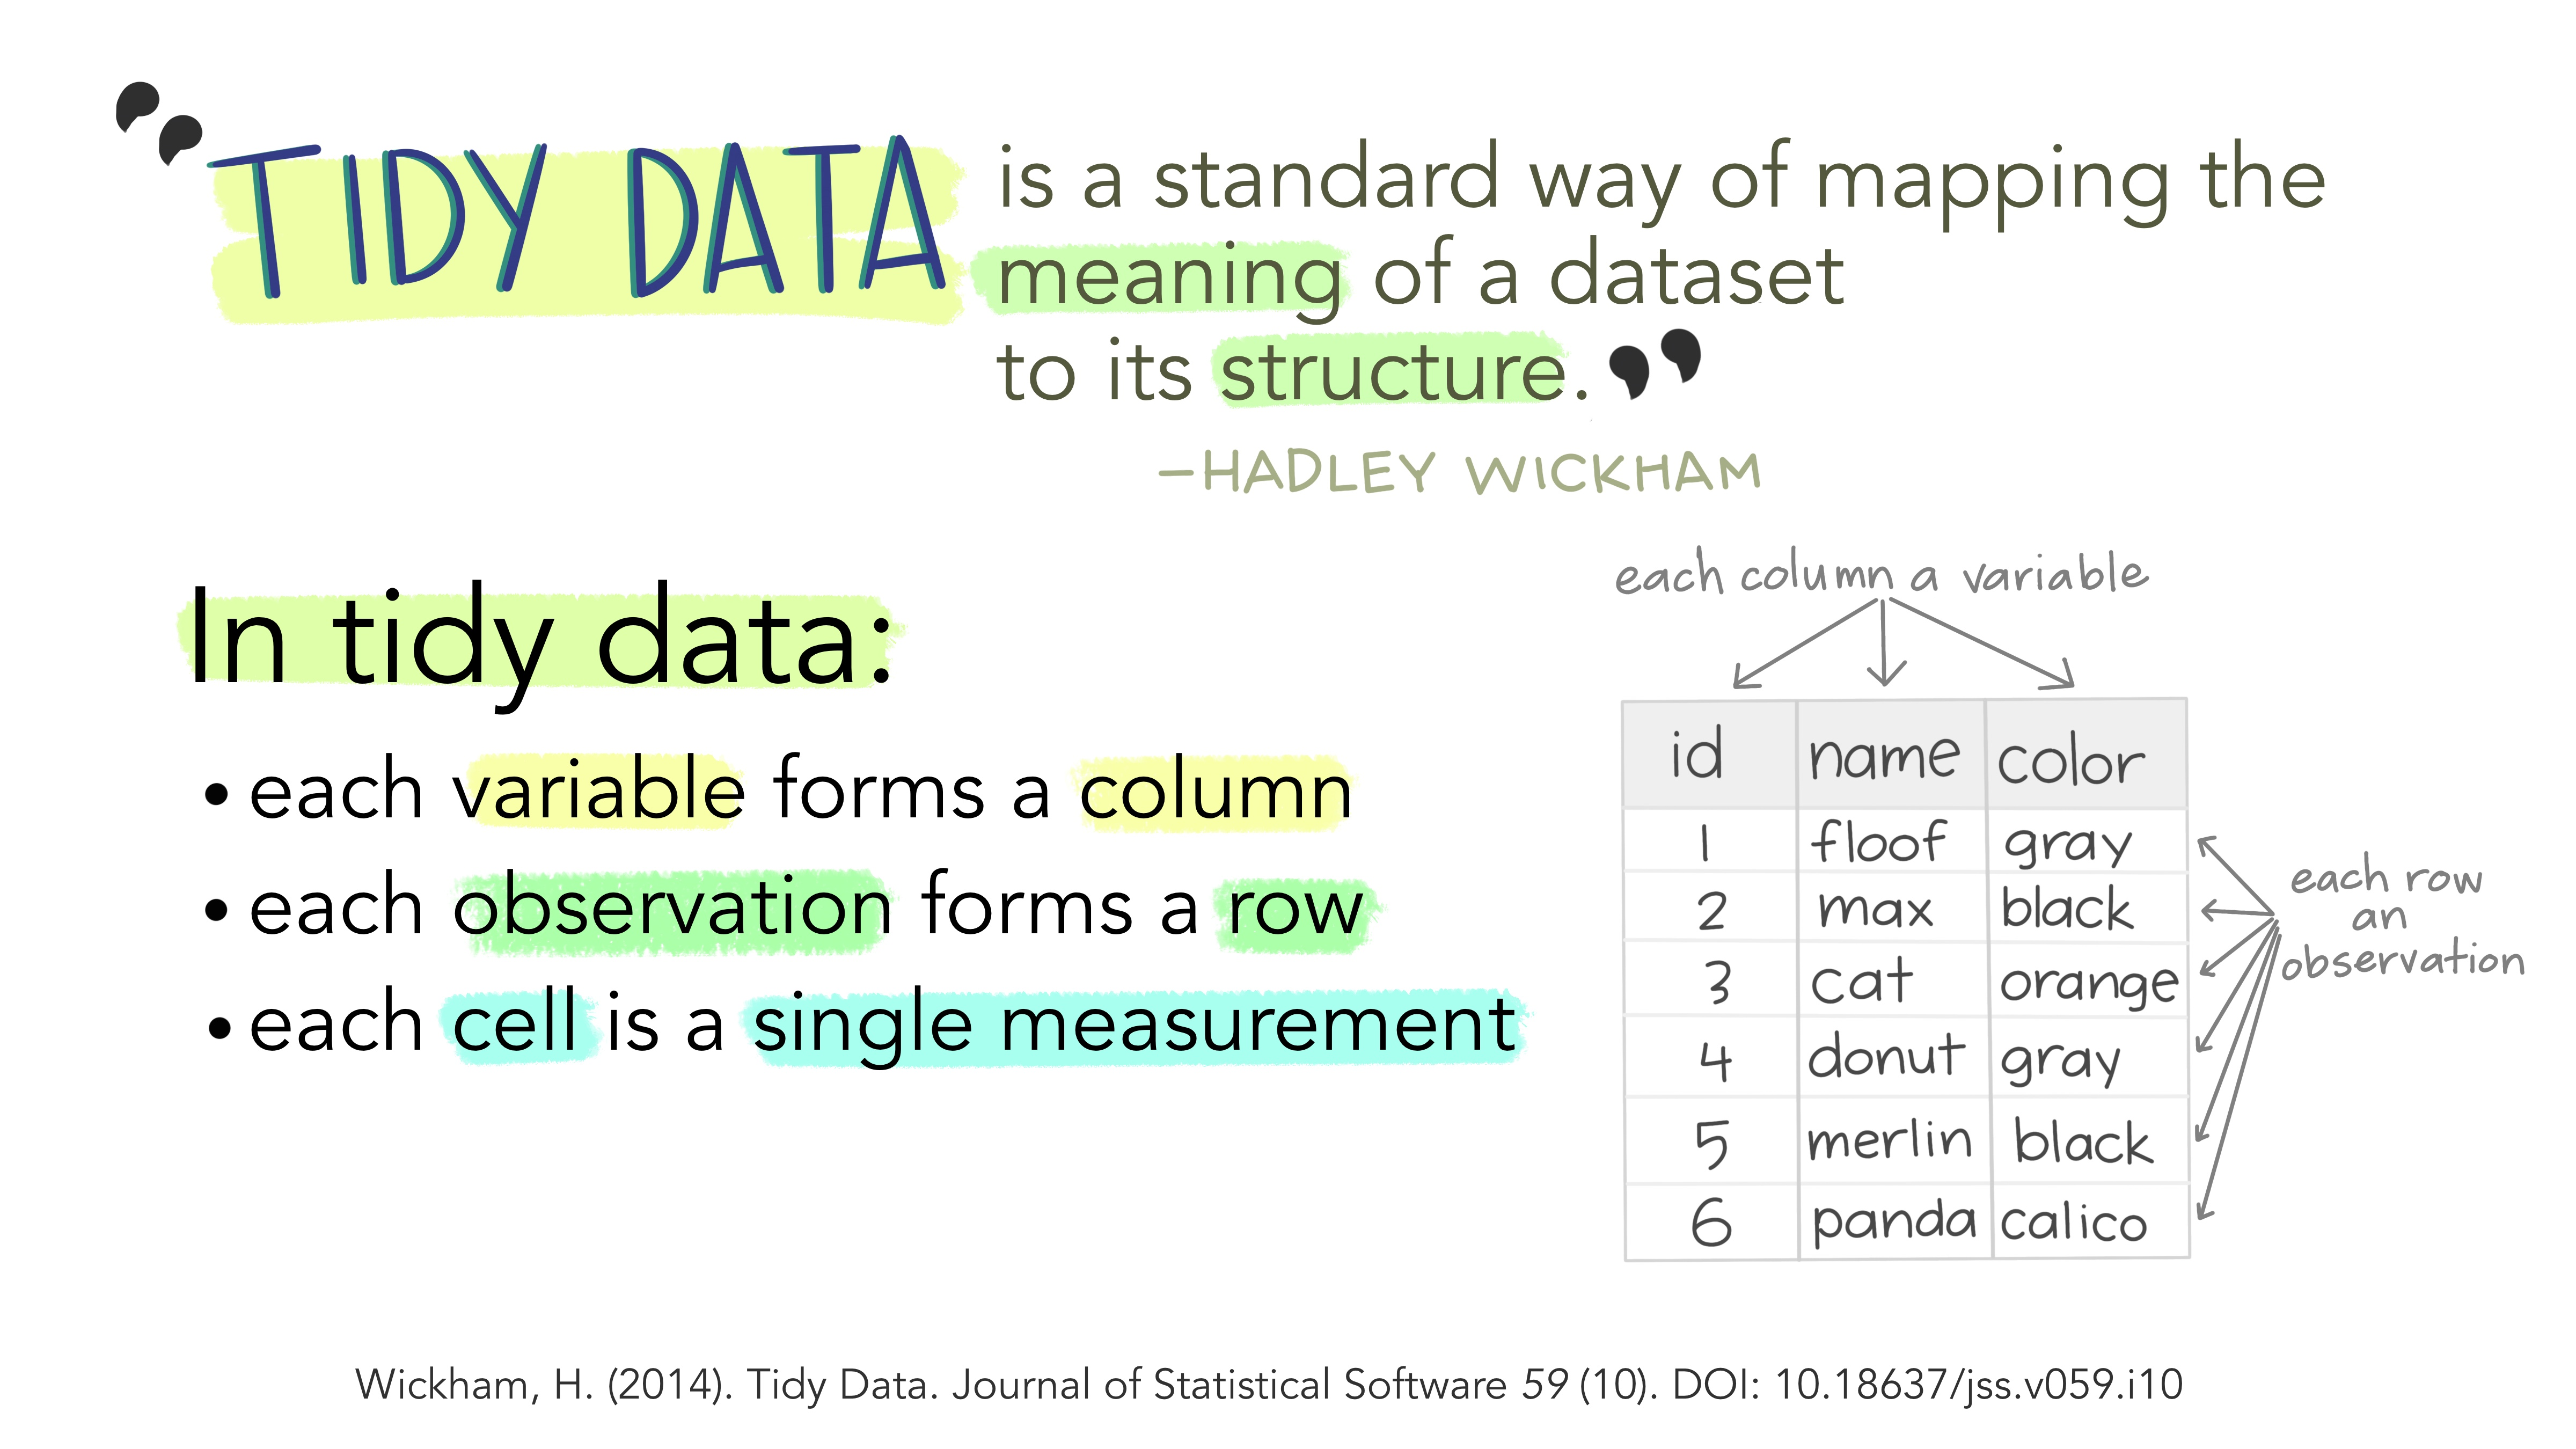 """""""Tidy data is a standard way of mapping the *meaning* of a dataset to its *structure*"""" - Hadley Wickham. In tidy data: each *variable* forms a *column*, each *observation* forms a *row*, and each *cell* is a *single measurement*. Wickham, H (2014). Tidy Data. Journal of Statistical Software 59 (10). DOT: 10.18637/jss.v059.i10. Illustrations from the [Openscapes](https://www.openscapes.org/) blog [*Tidy Data for reproducibility, efficiency, and collaboration*](https://www.openscapes.org/blog/2020/10/12/tidy-data/) by Julia Lowndes and Allison Horst"""